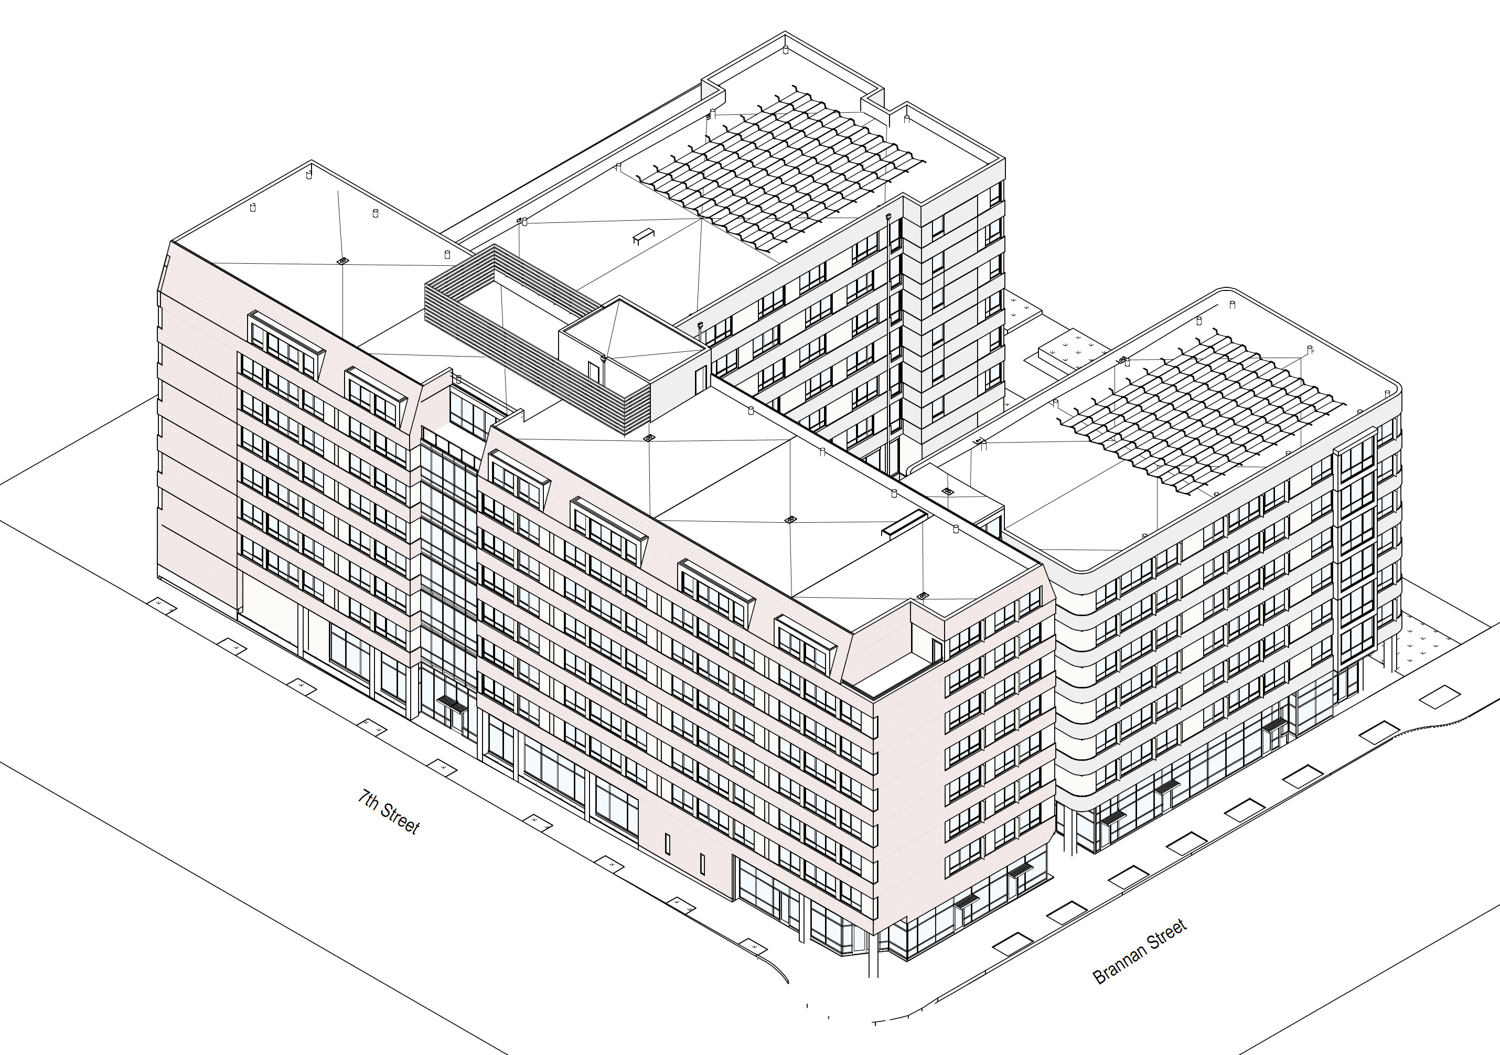 600 7th Street axonometric drawing, design by Cliff Lowe Associates